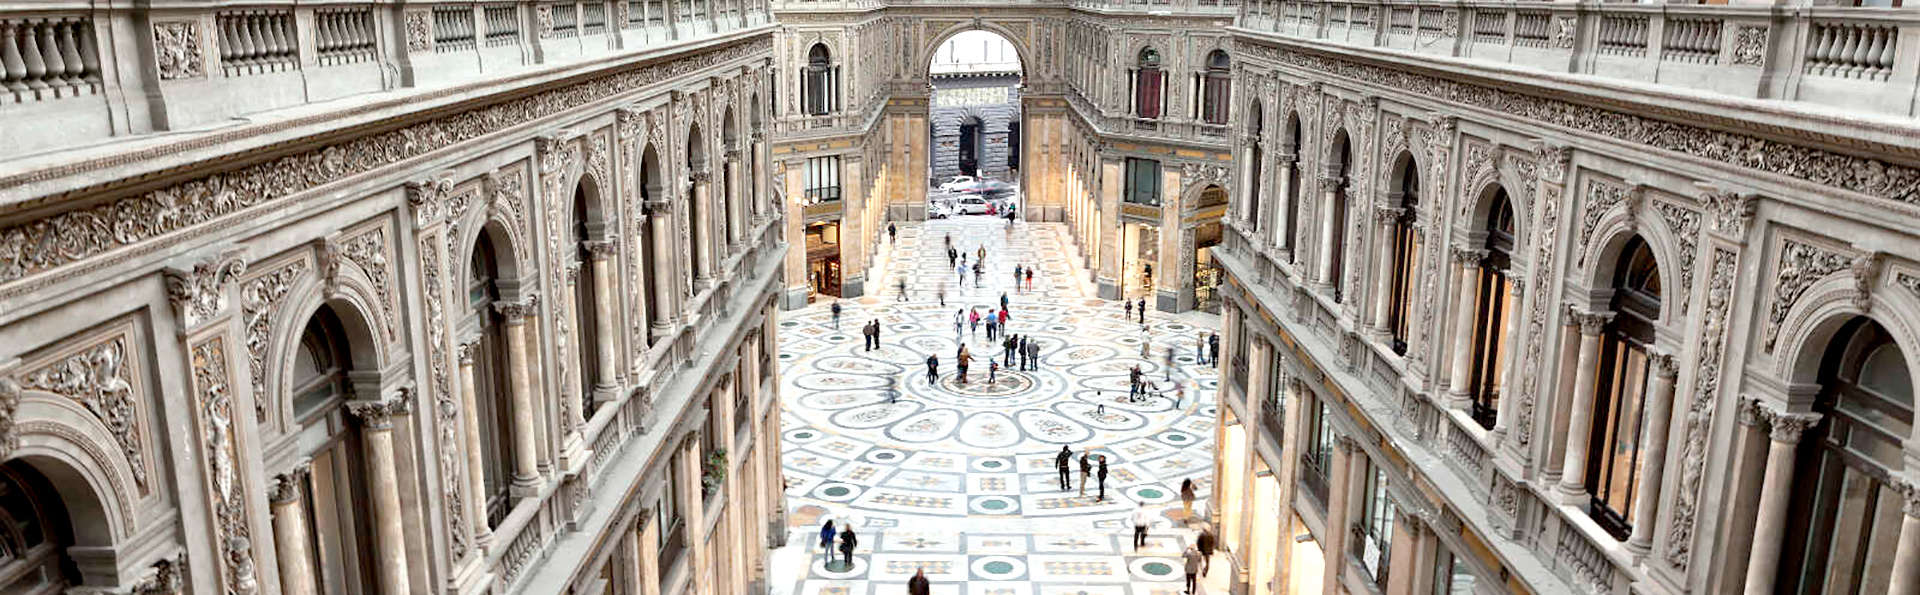 Luxury Art Resort Galleria Umberto - Edit_ArtResort2.jpg